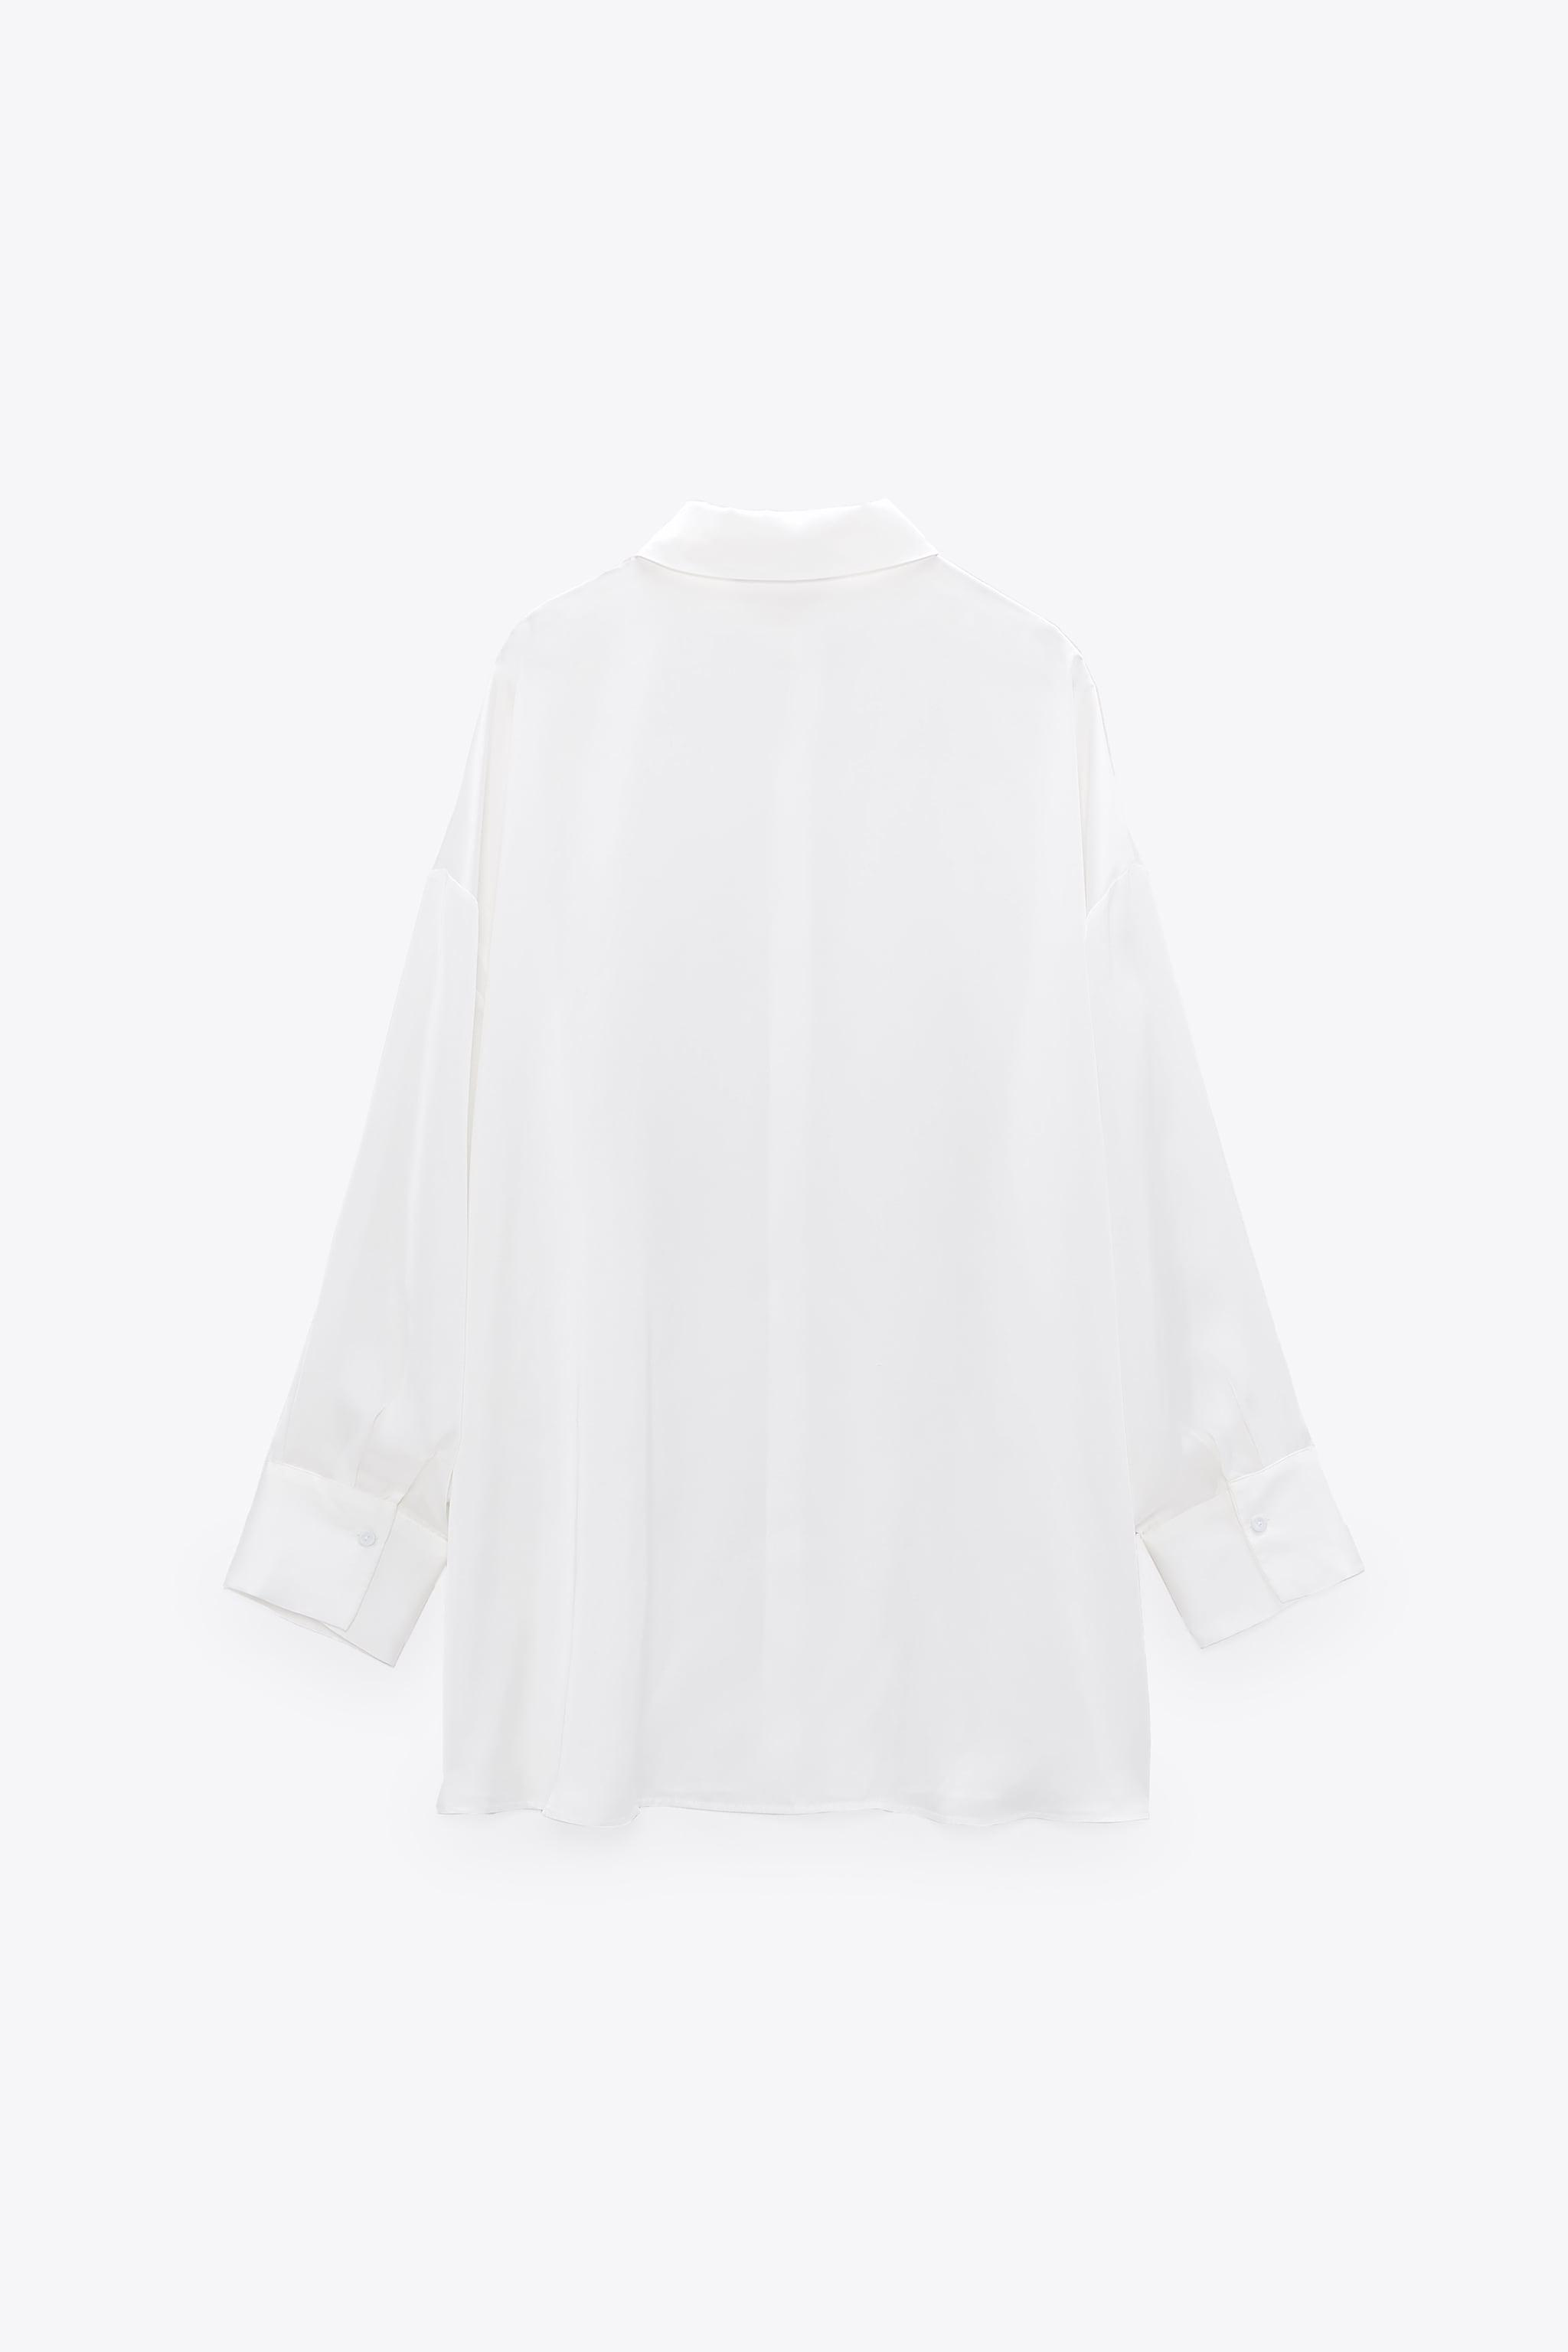 FLOWY LINED BUTTON SHIRT 7